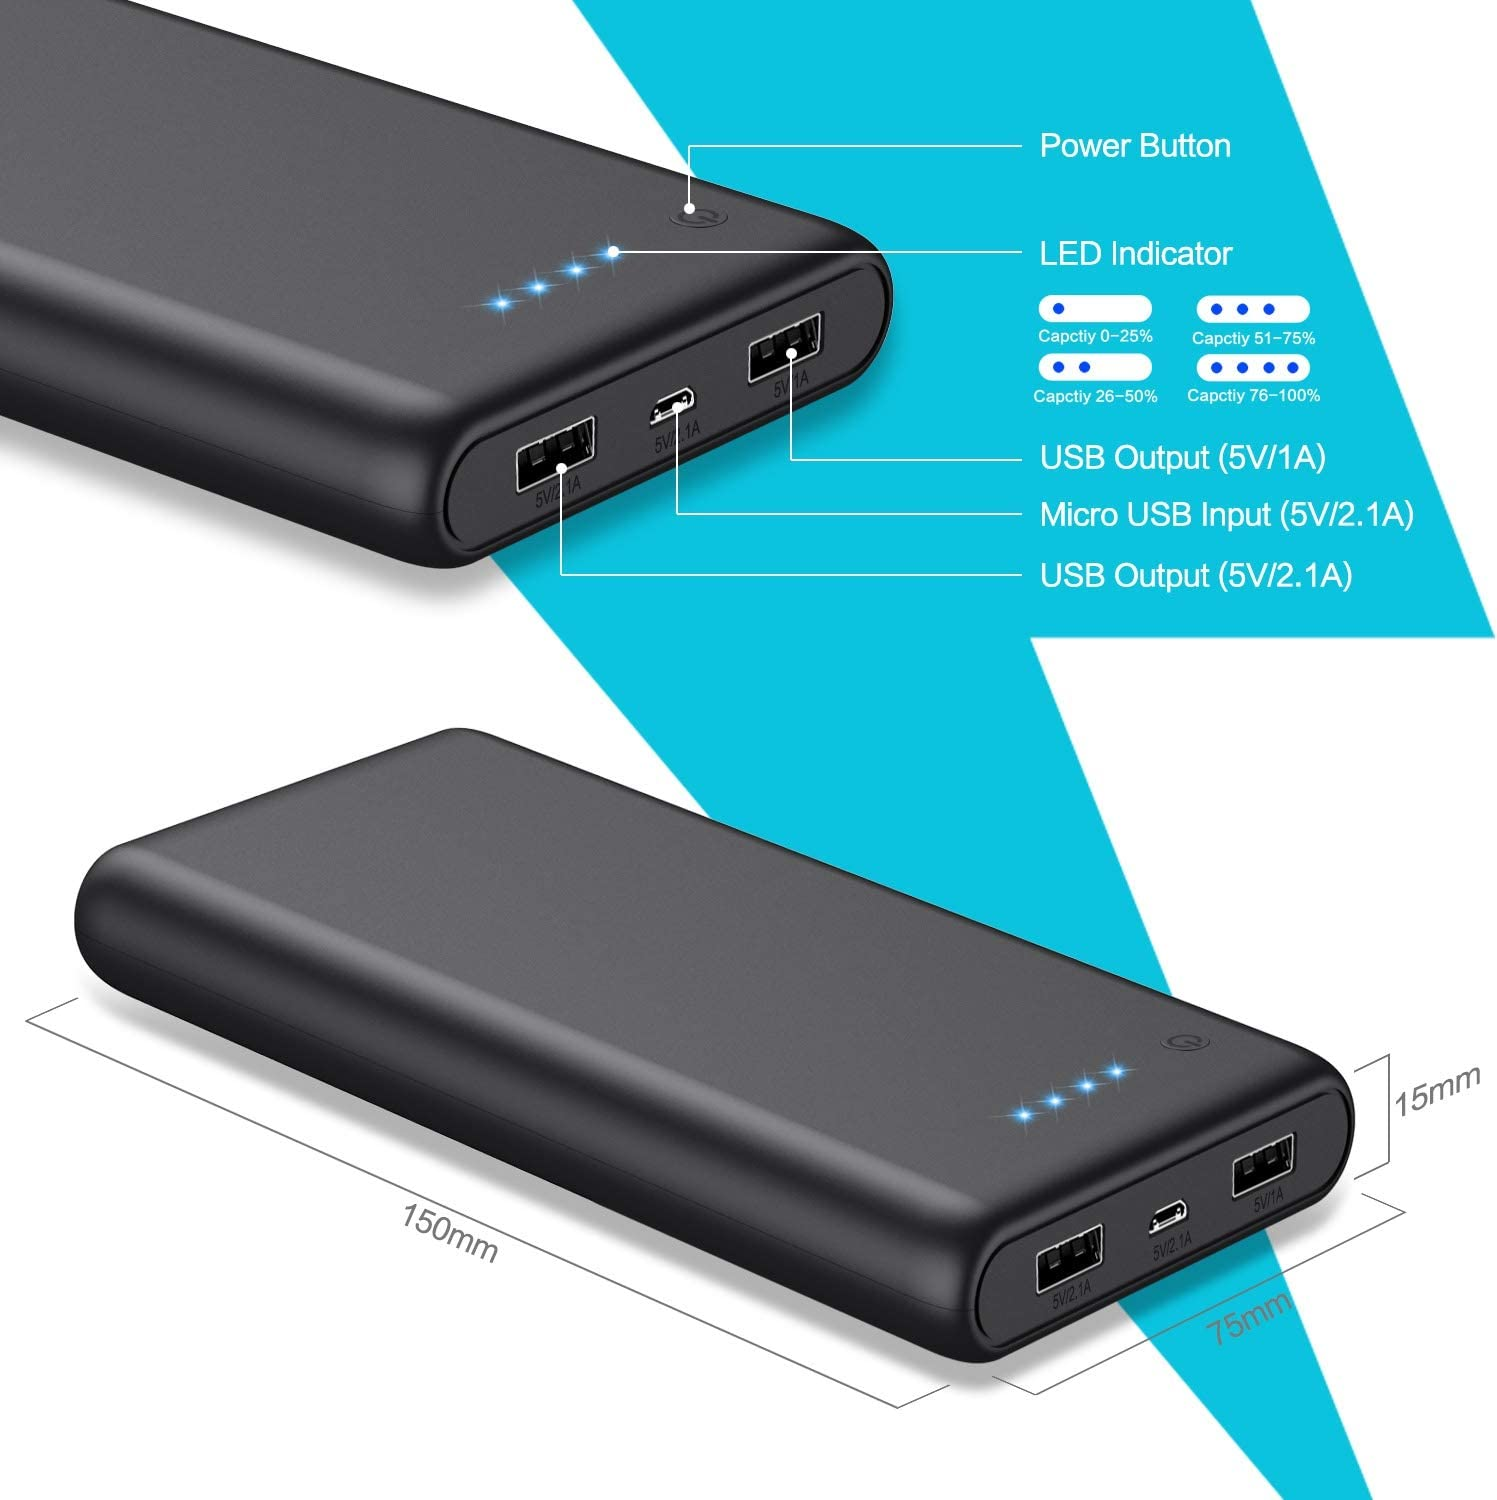 Samsung Galaxy Dual USB Outputs Portable Charger 24800mAh Power Bank with Smart LED Status External Battery Pack Portable Phone Charger for iPhone Tablet and More Black